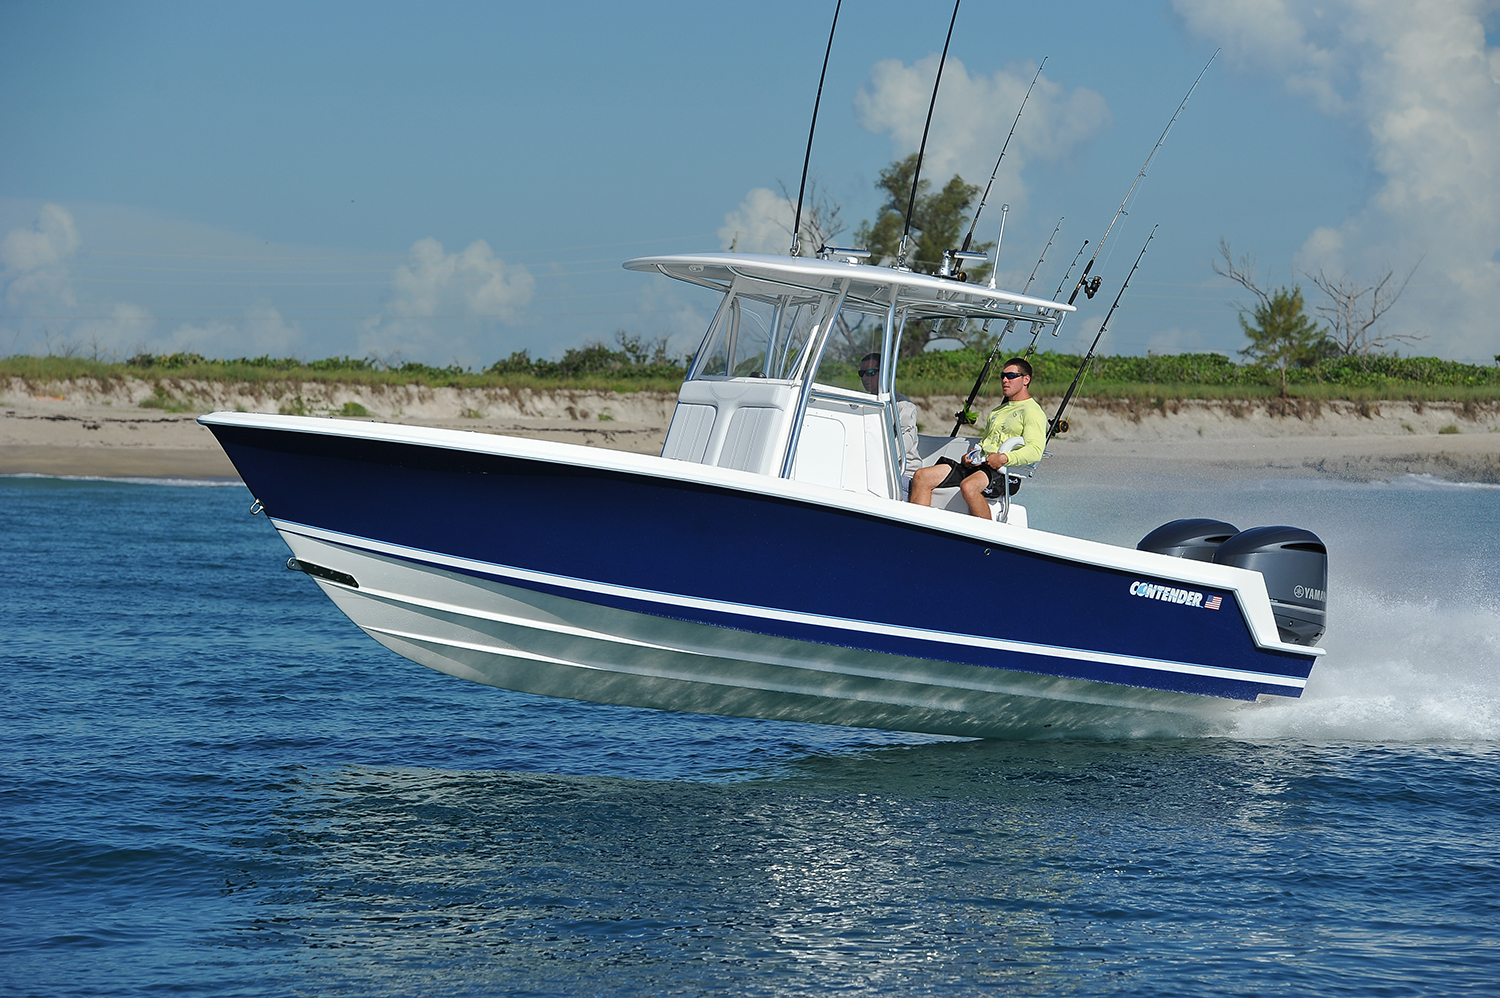 Florida sportsman best boat 28 39 to 32 39 center consoles for Best center console fishing boats